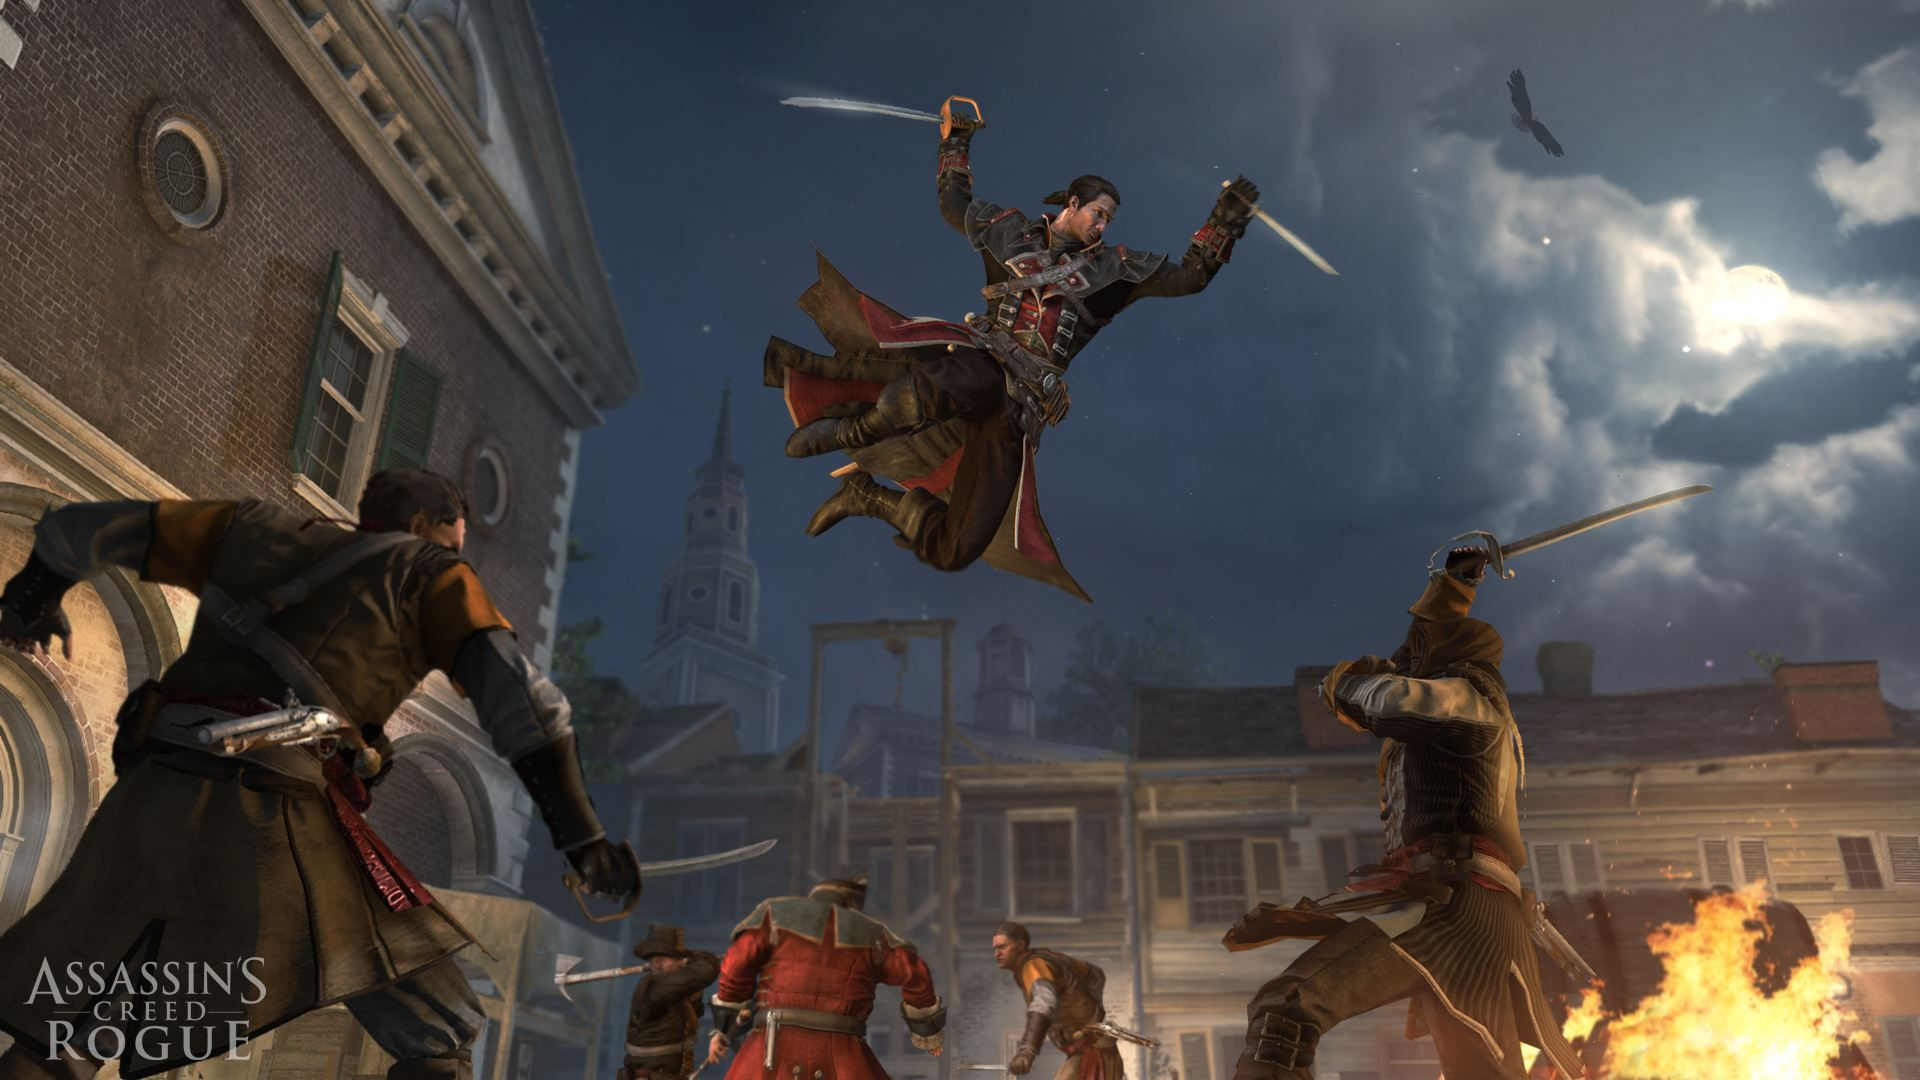 Assassin's Creed Rogue (PC) - 12